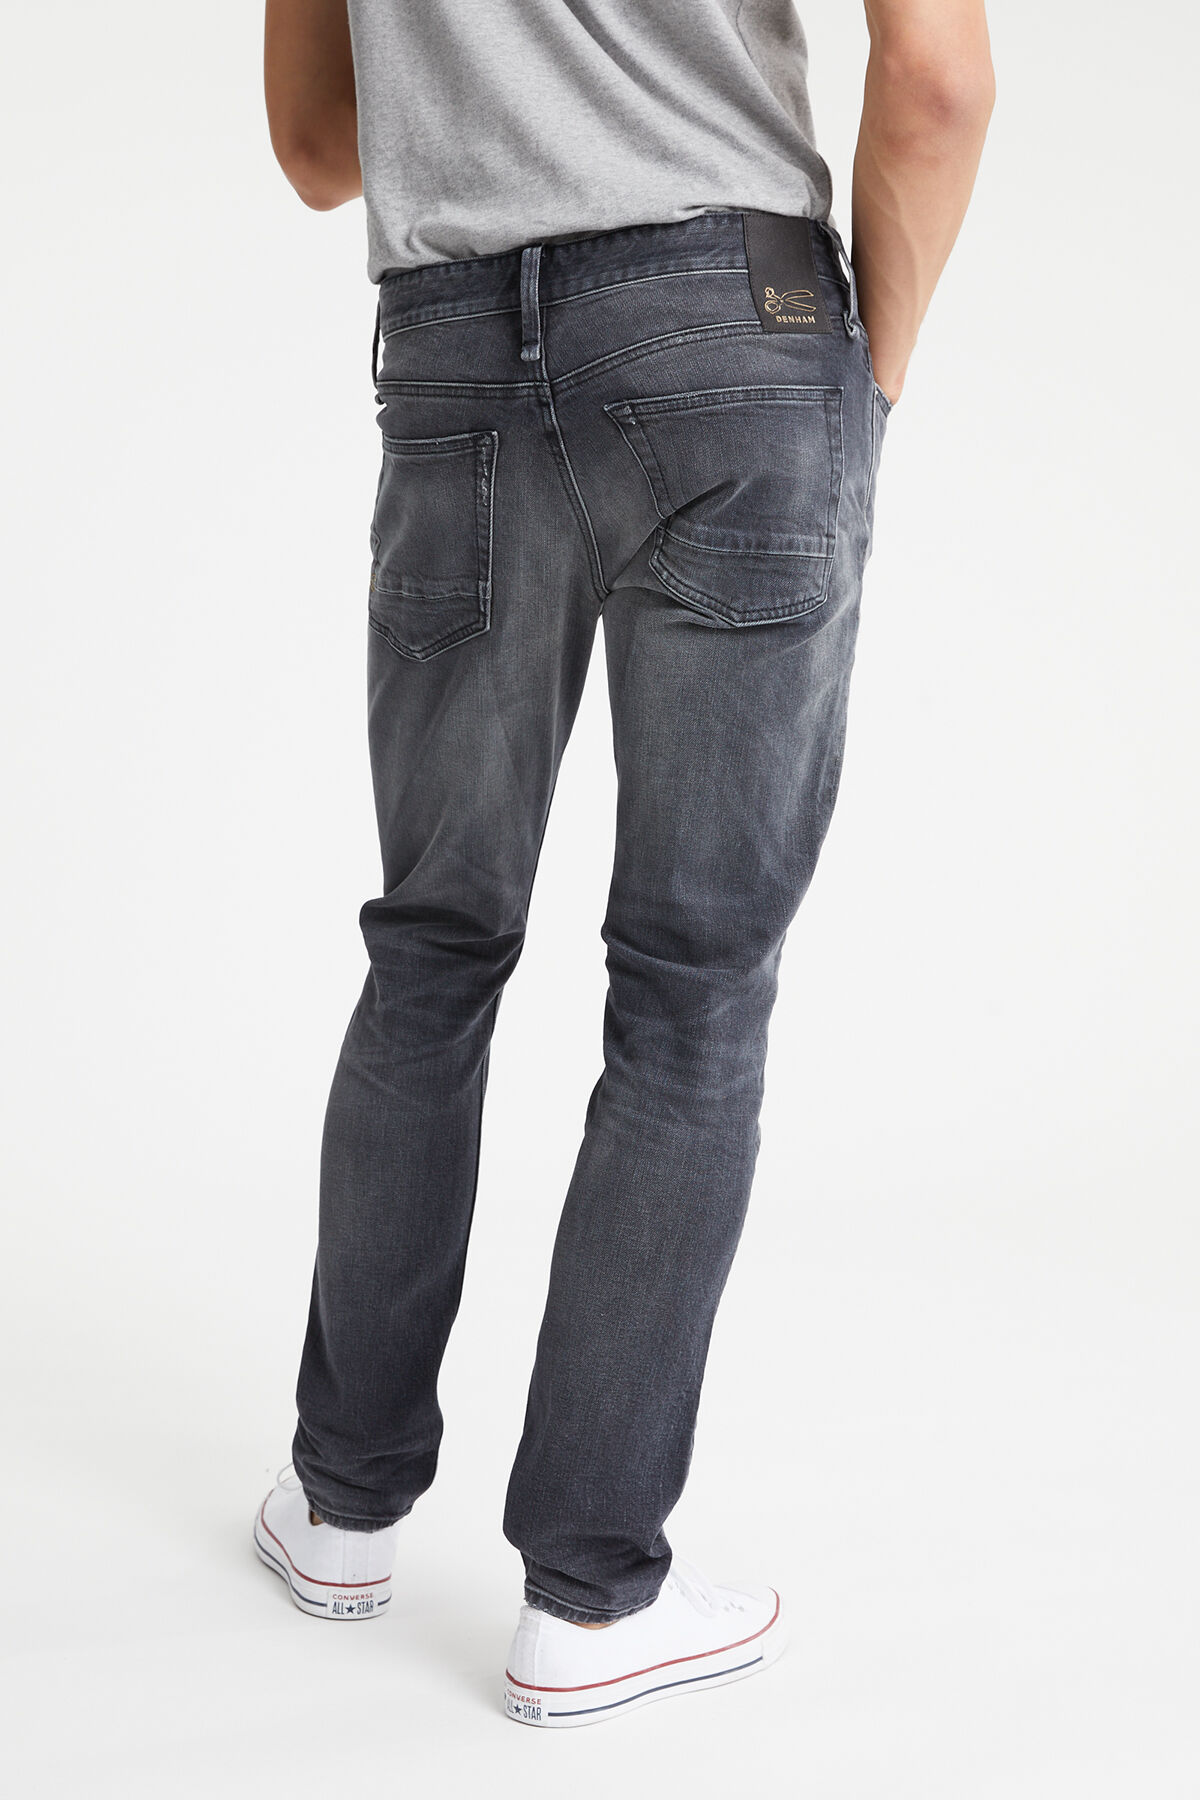 RAZOR Three Year Black Denim - Slim Fit